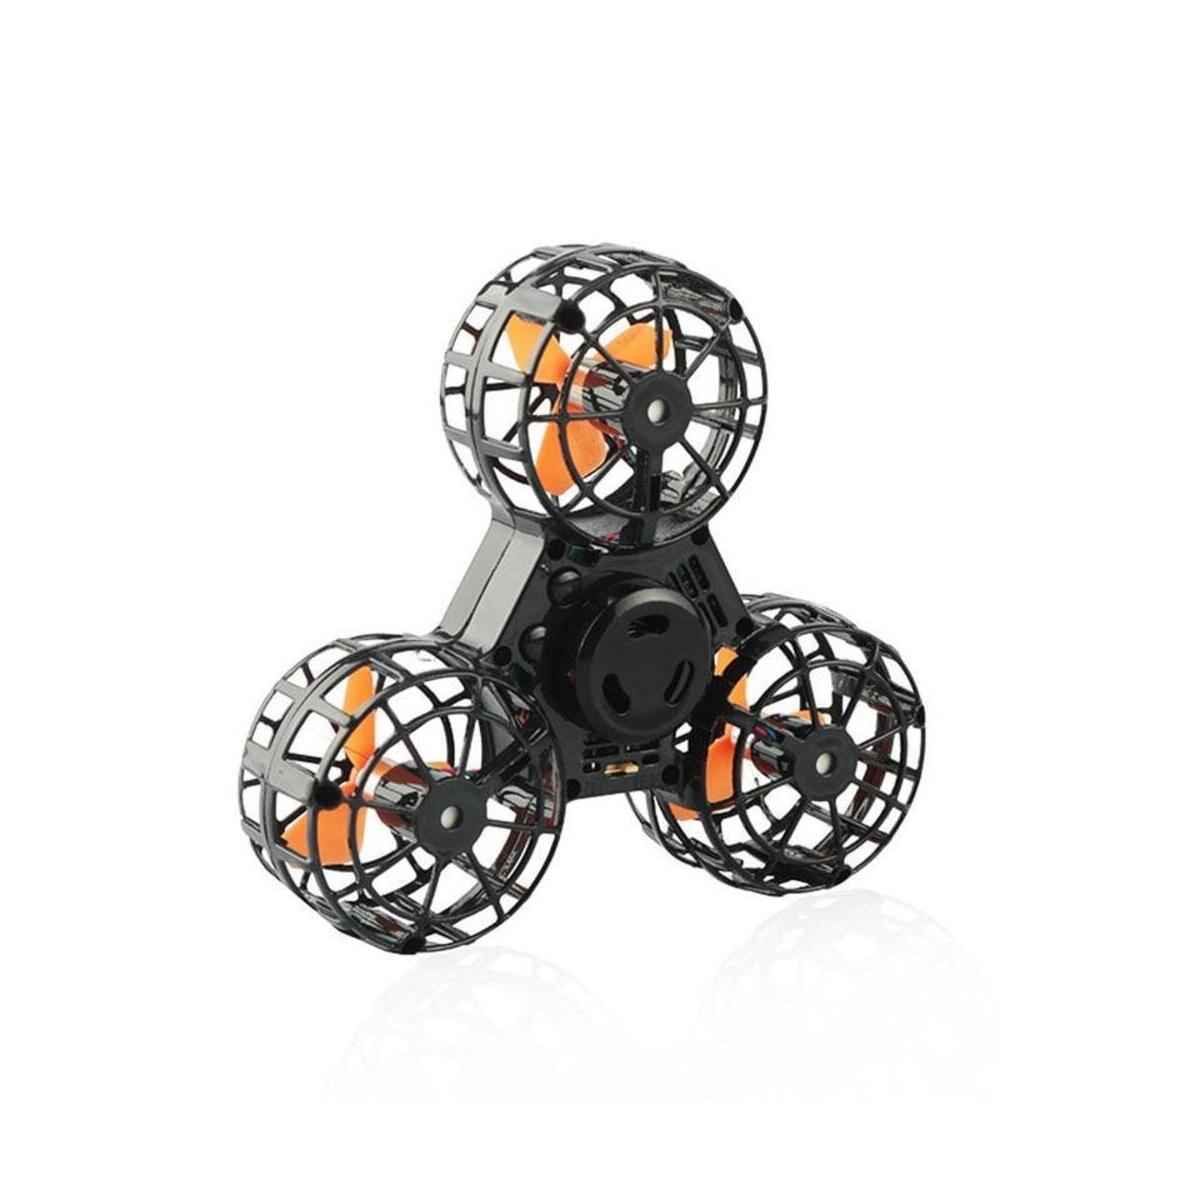 Anti-Anxiety Fidget Toy, Flying Fidget Spinner, Mini Drone with 6 LED Pattern, USB Rechargeable